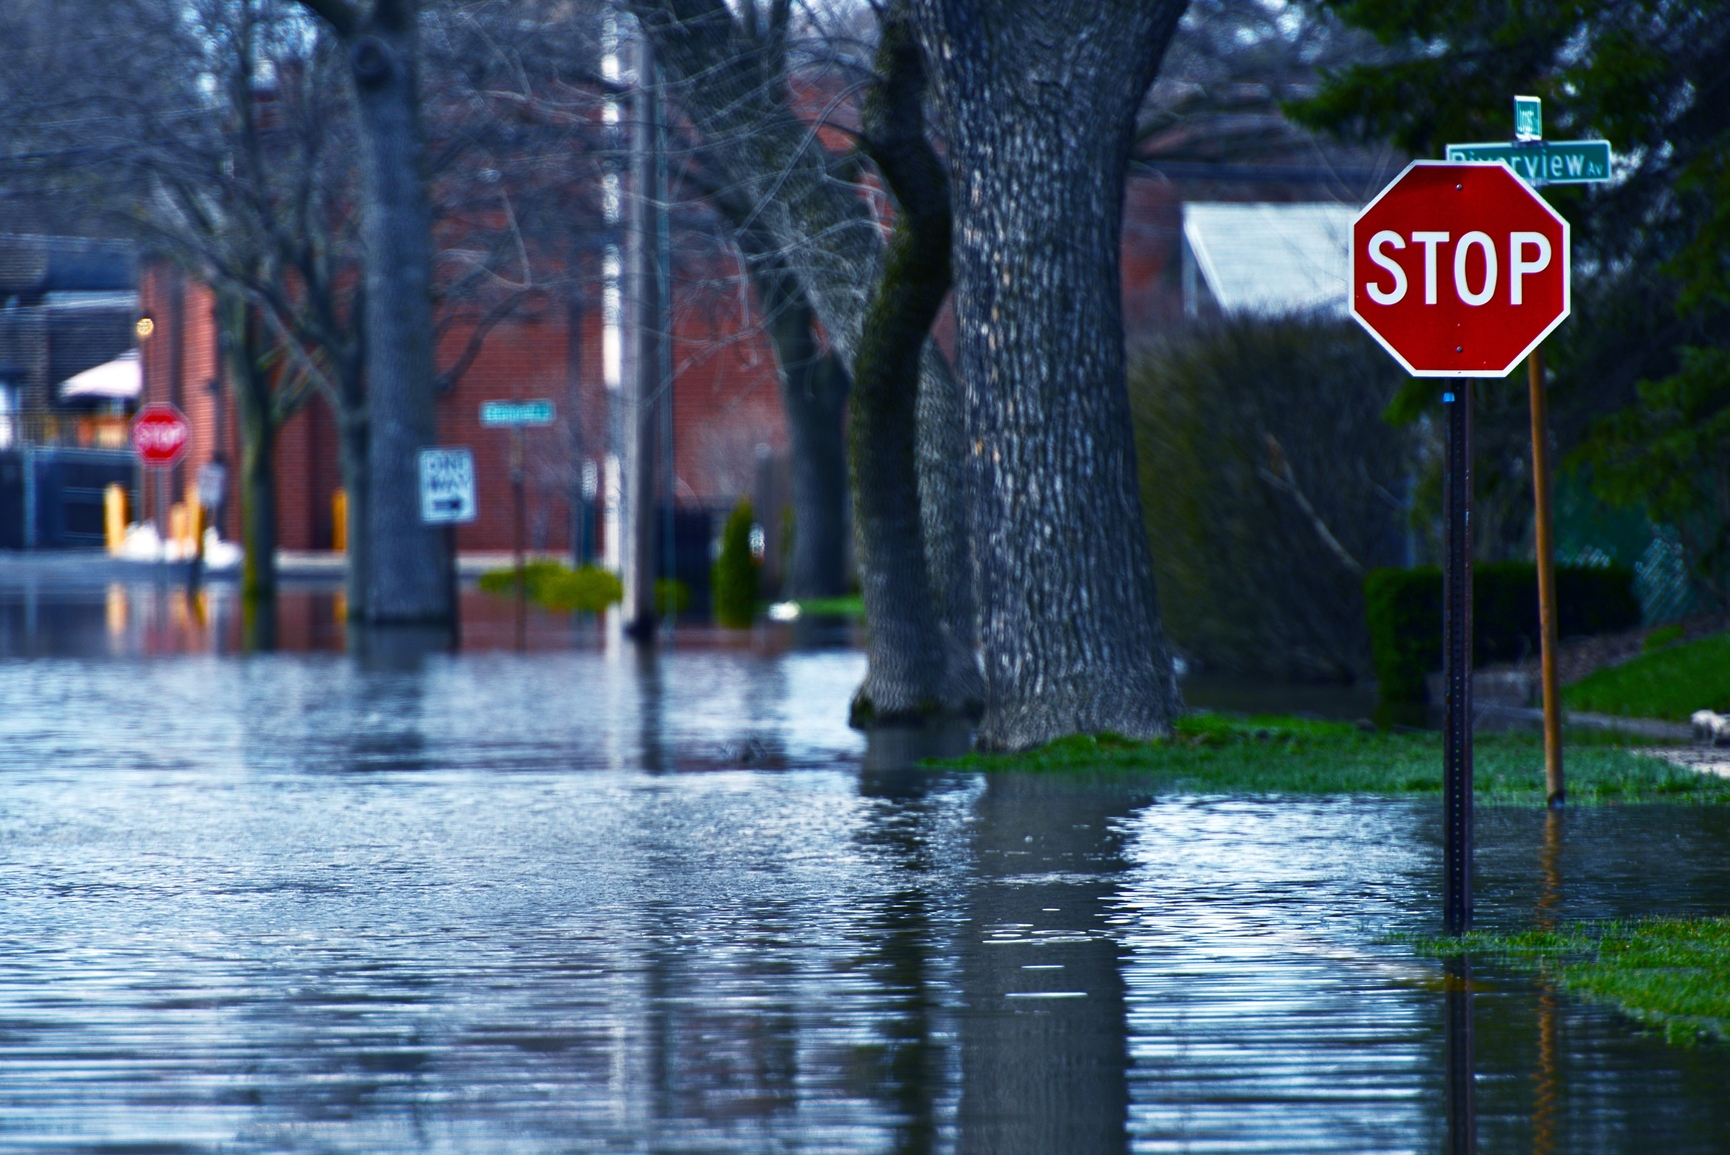 photodune-4727769-flooded-street-m